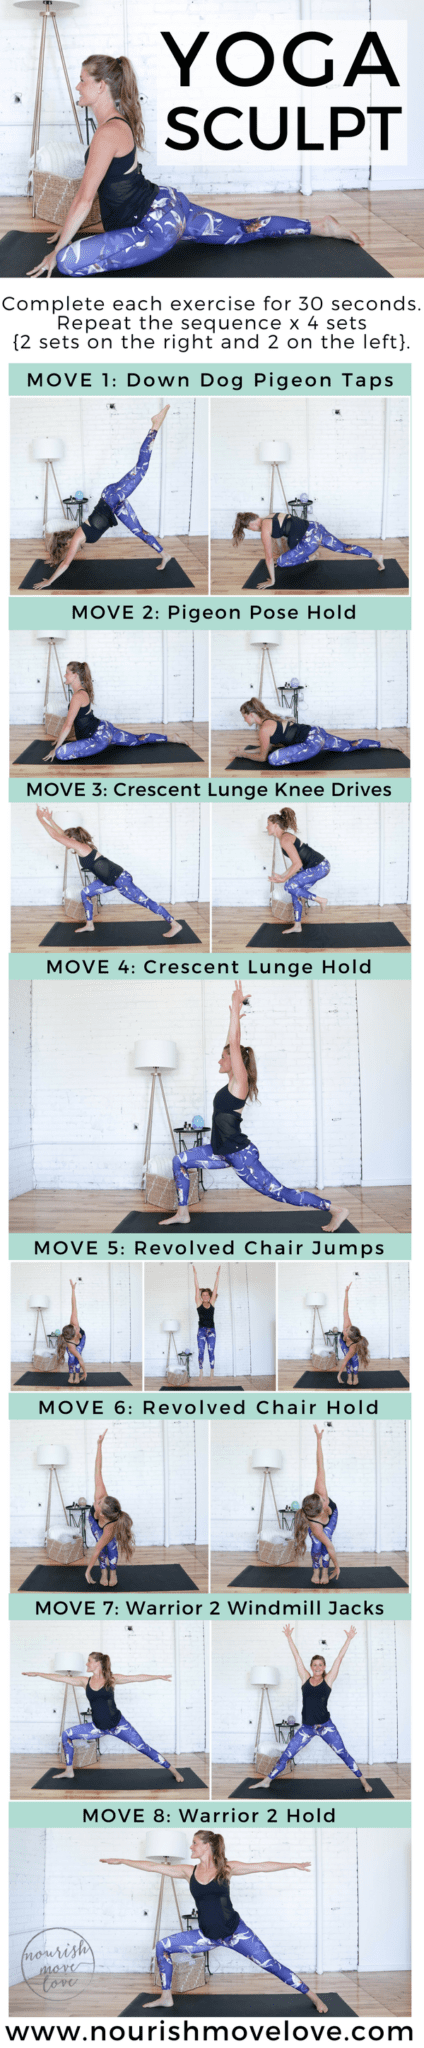 20-Minute Beginner HIIT Cardio Yoga Workout | www.nourishmovelove.com